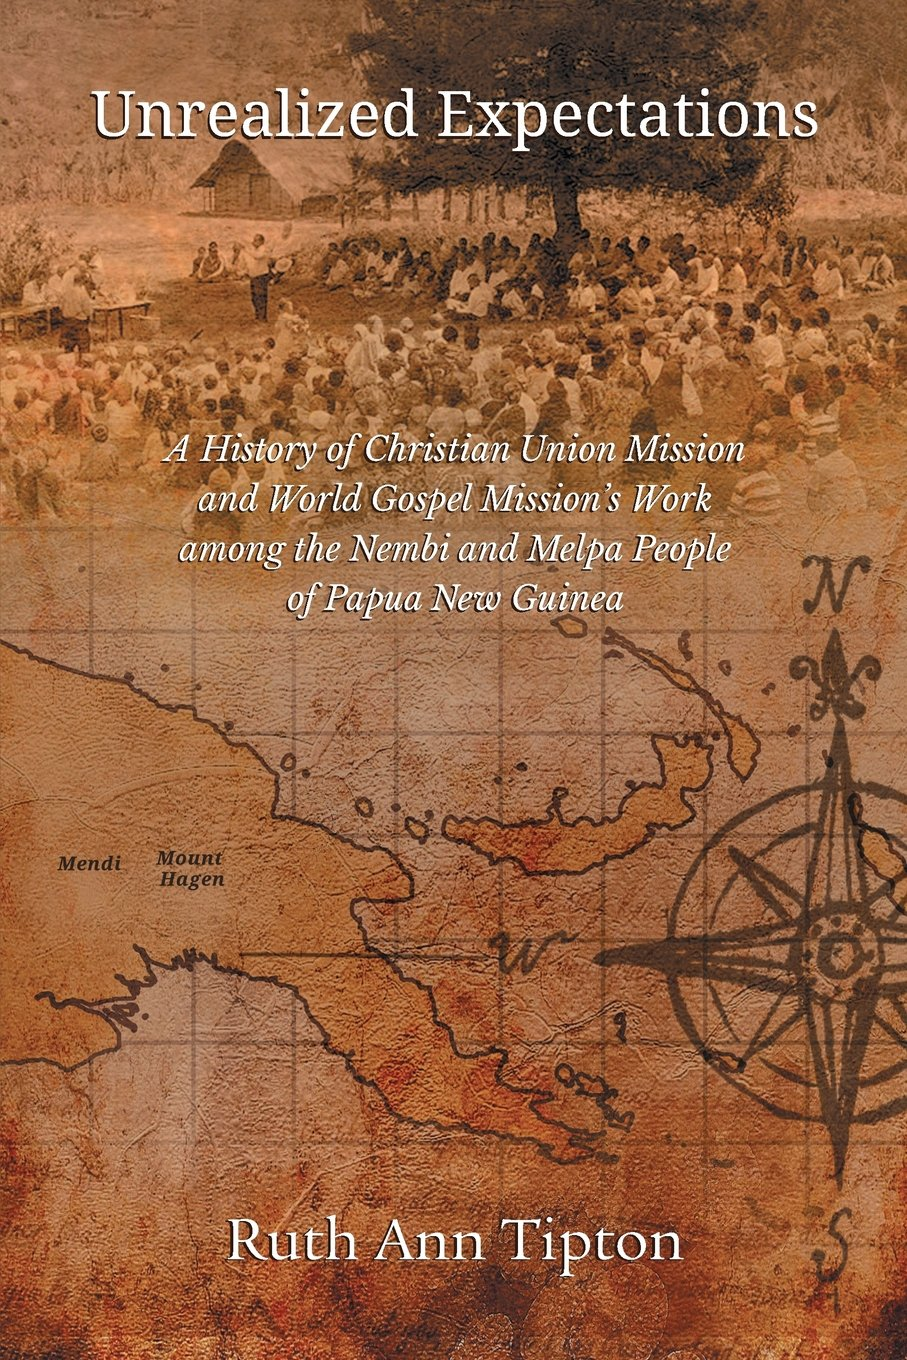 Unrealized Expectations: A History of Christian Union Mission and World Gospel Mission's Work among the Nembi and Melpa People of Papua New Guinea (Asbury Theological Seminary Series) ebook